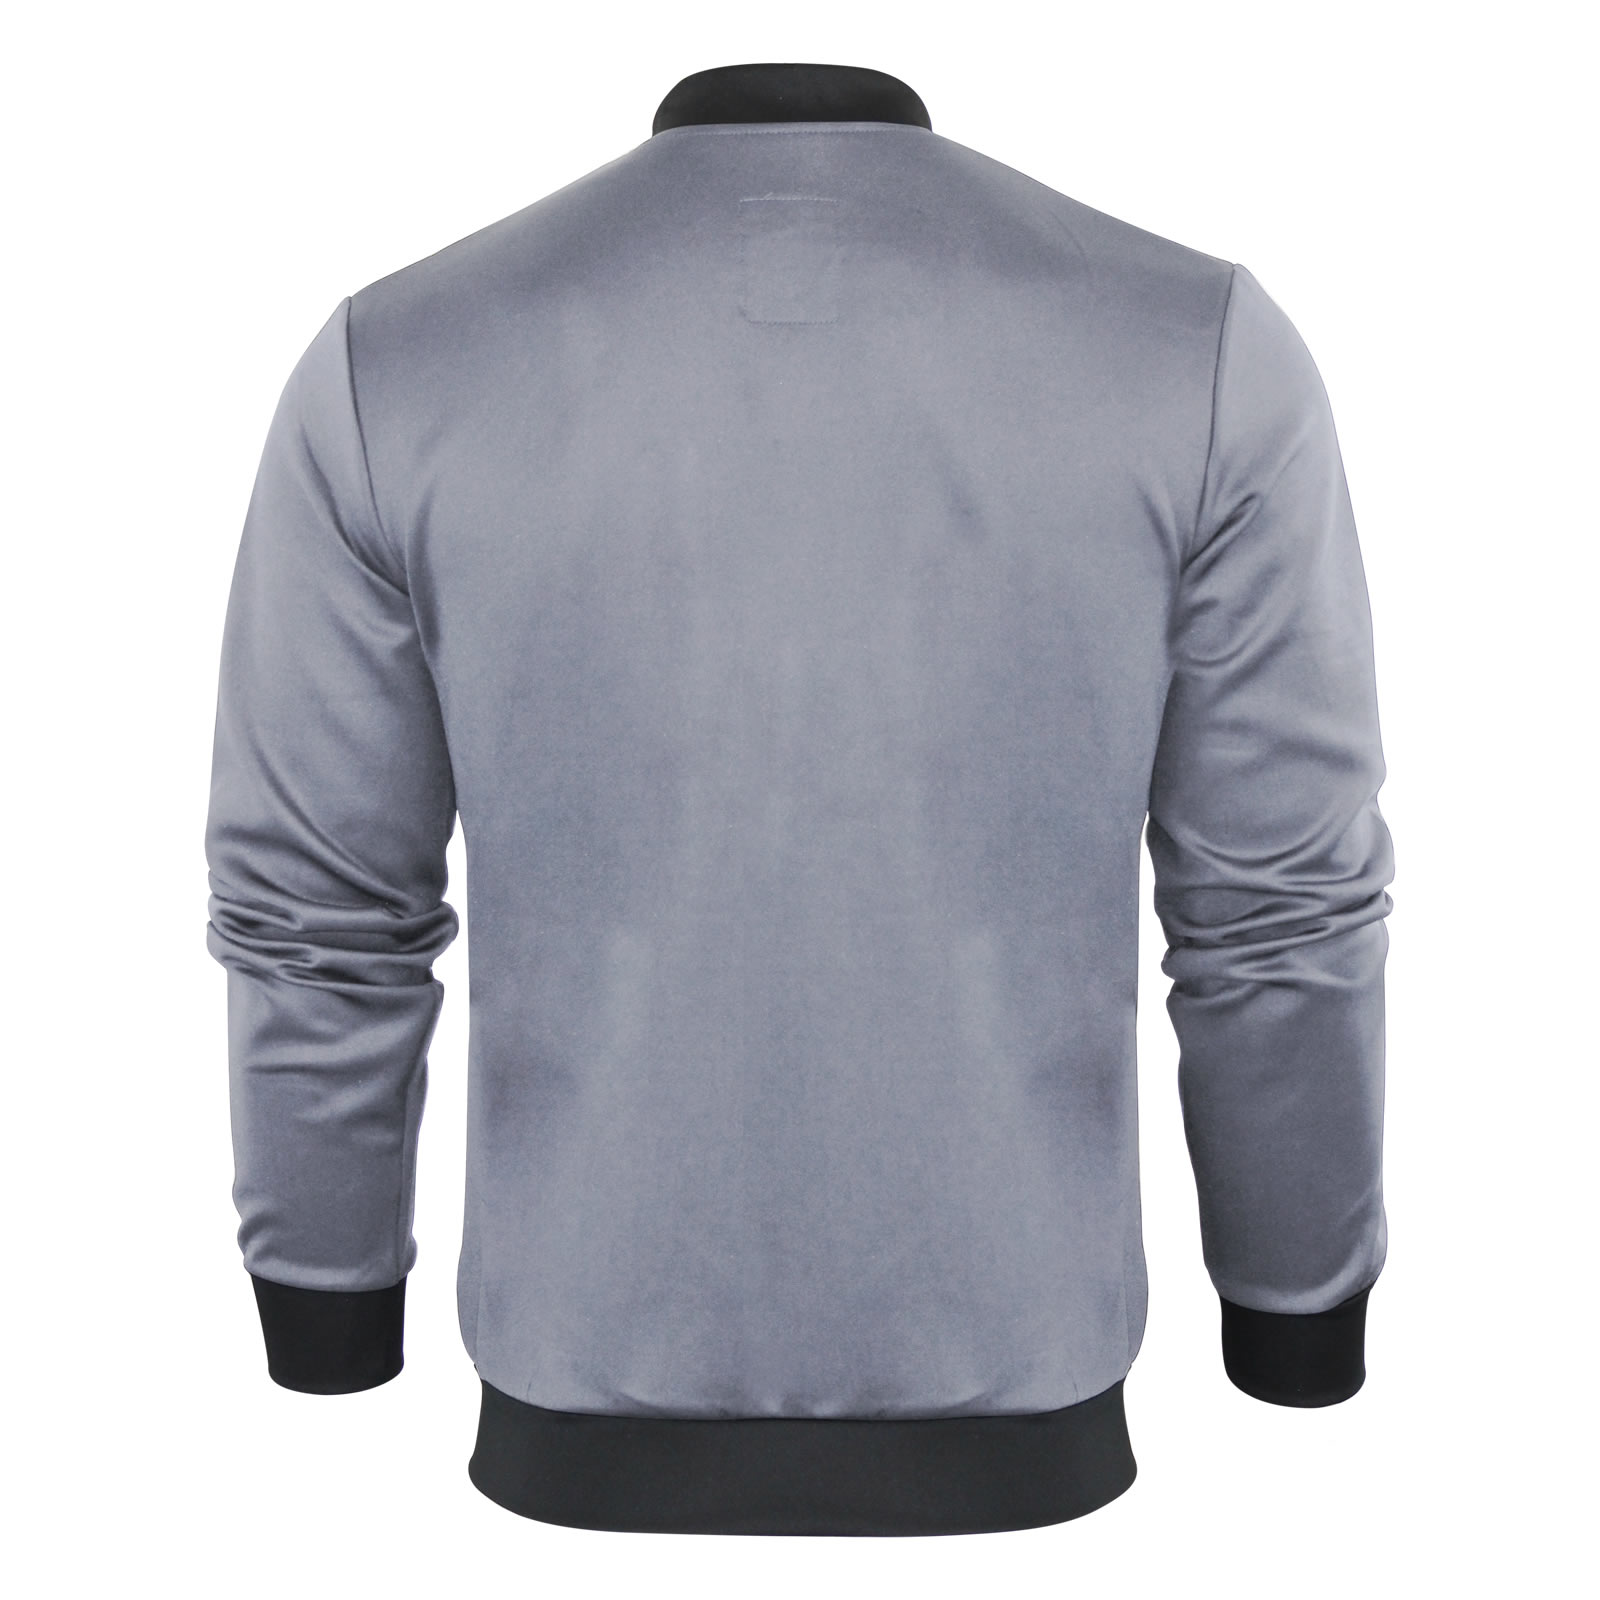 Mens-Jacket-Brave-Soul-Granville-Tricot-Sport-Lux-Summer-Casual-Sweater thumbnail 3